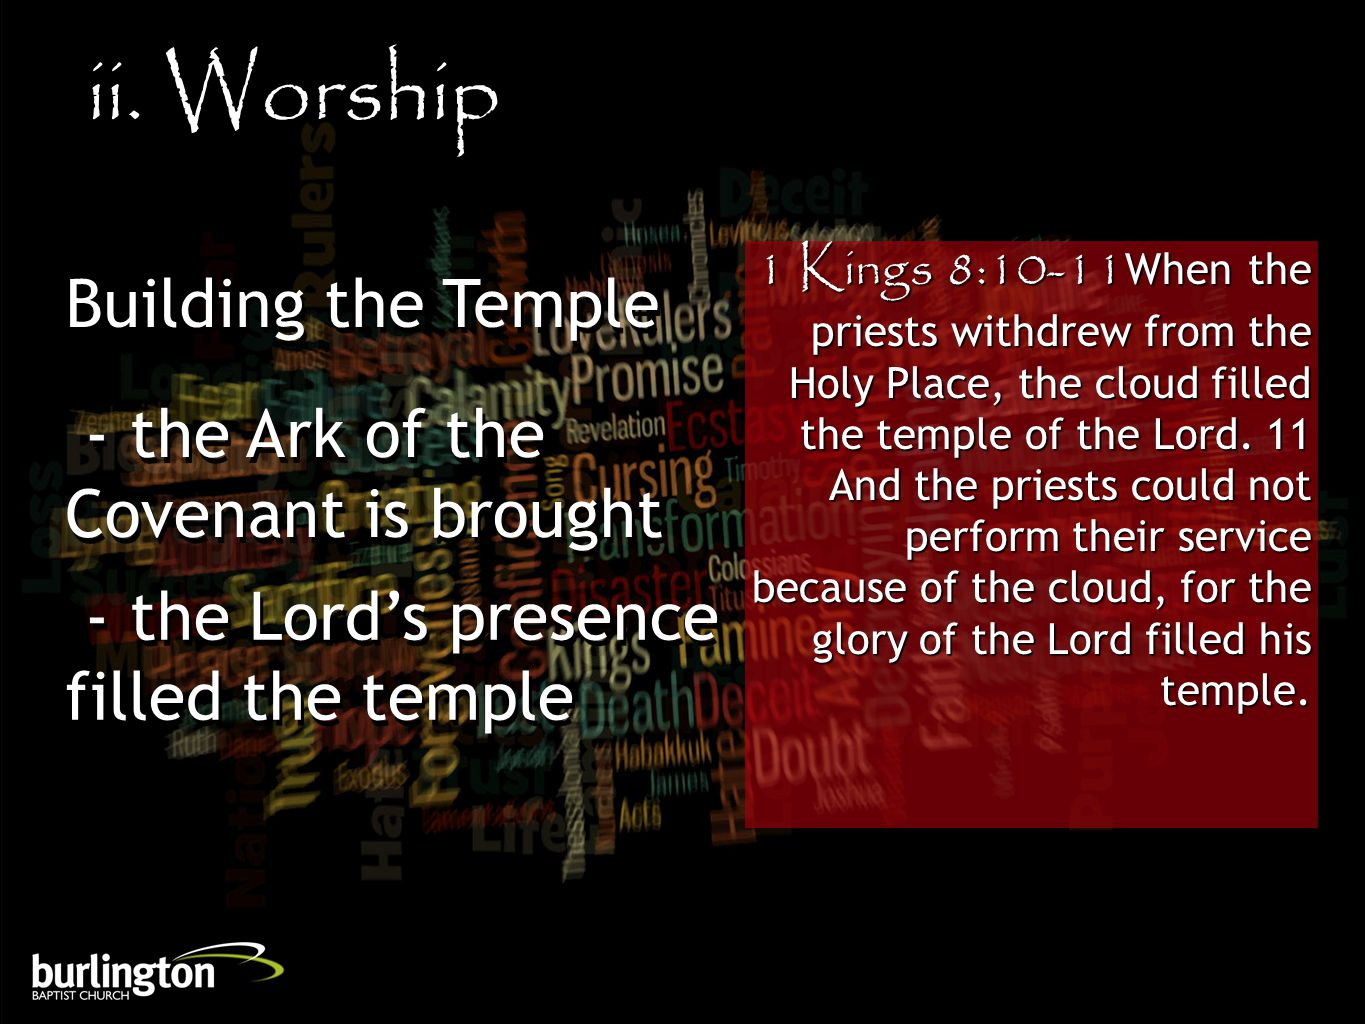 1 Kings 8:10-11When the priests withdrew from the Holy Place, the cloud filled the temple of the Lord.